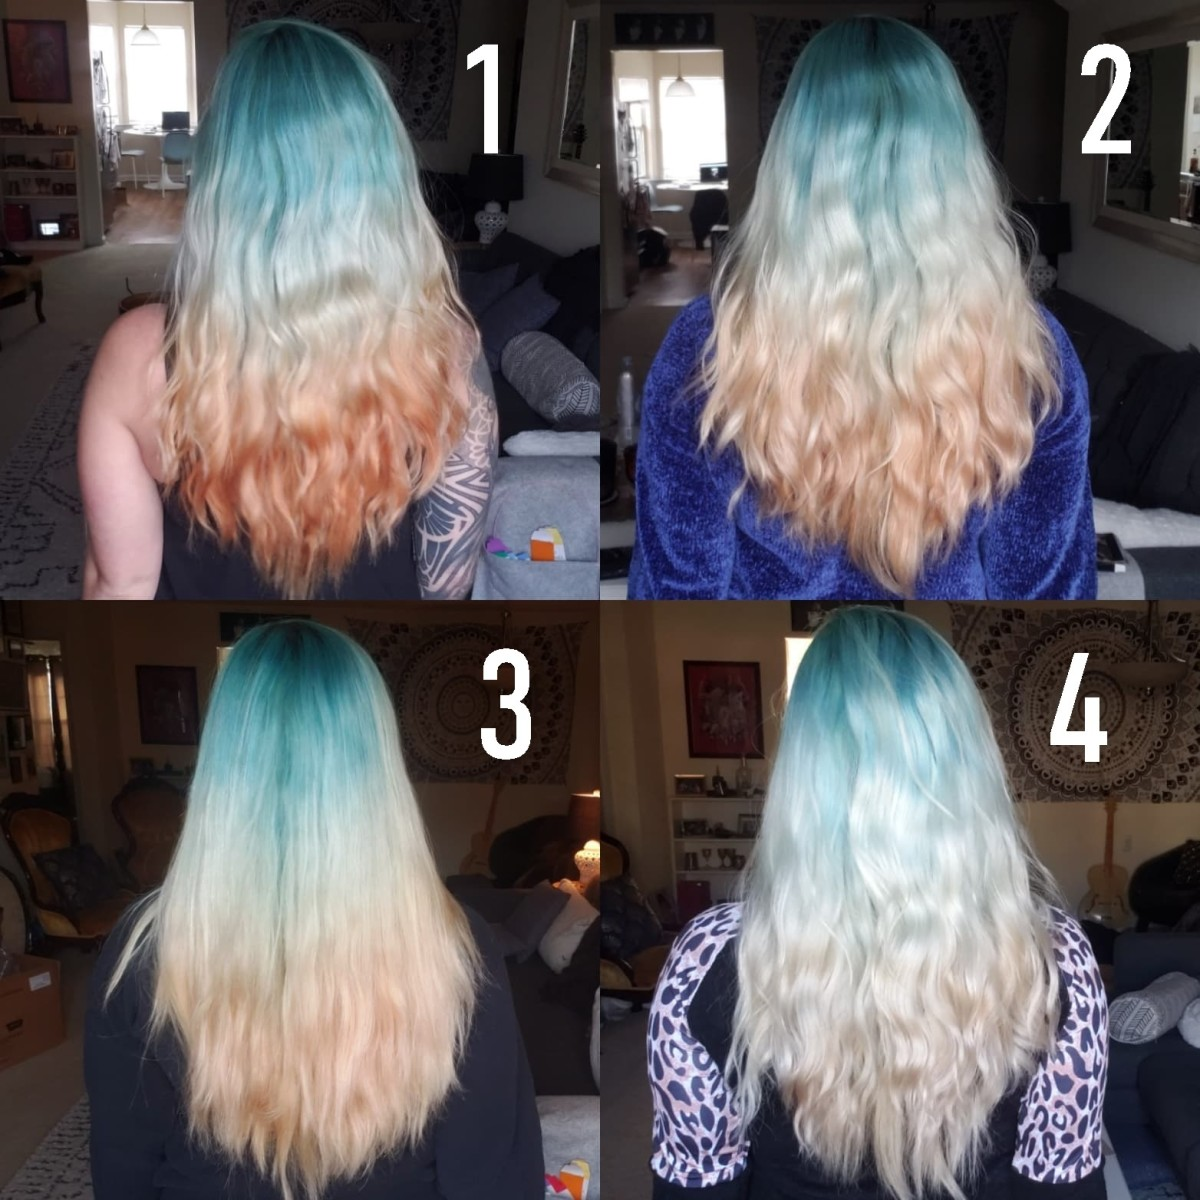 Fading process of the above dye using clarifying shampoo over the course of a month.